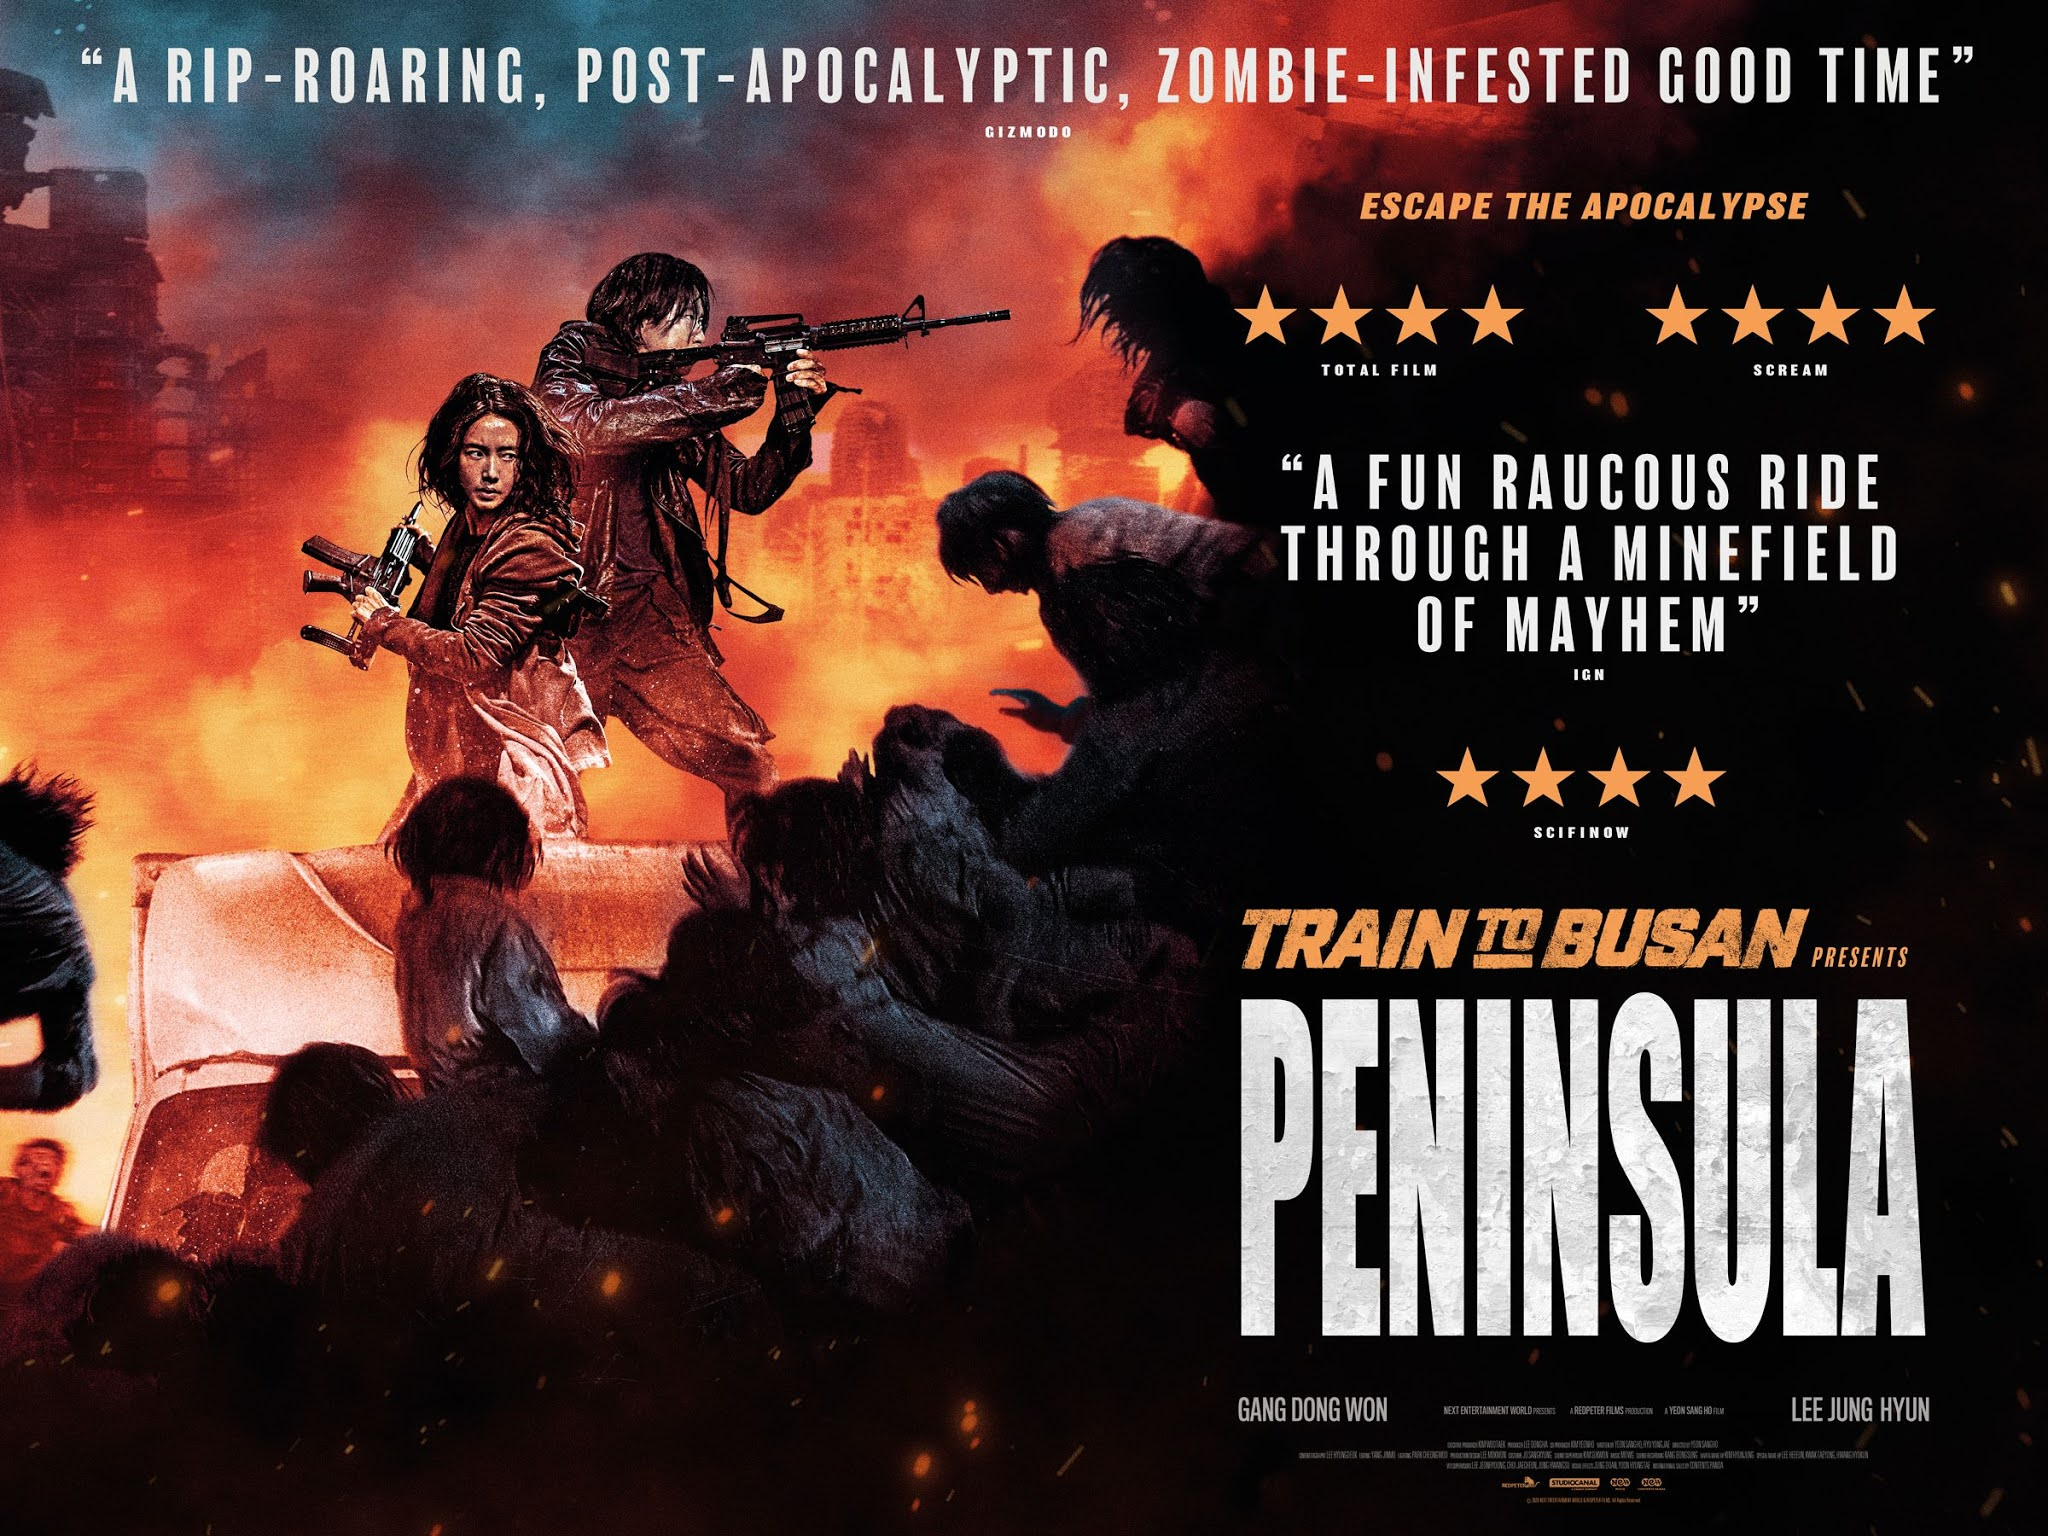 Train to Busan Presents Peninsula | Horror Film Review